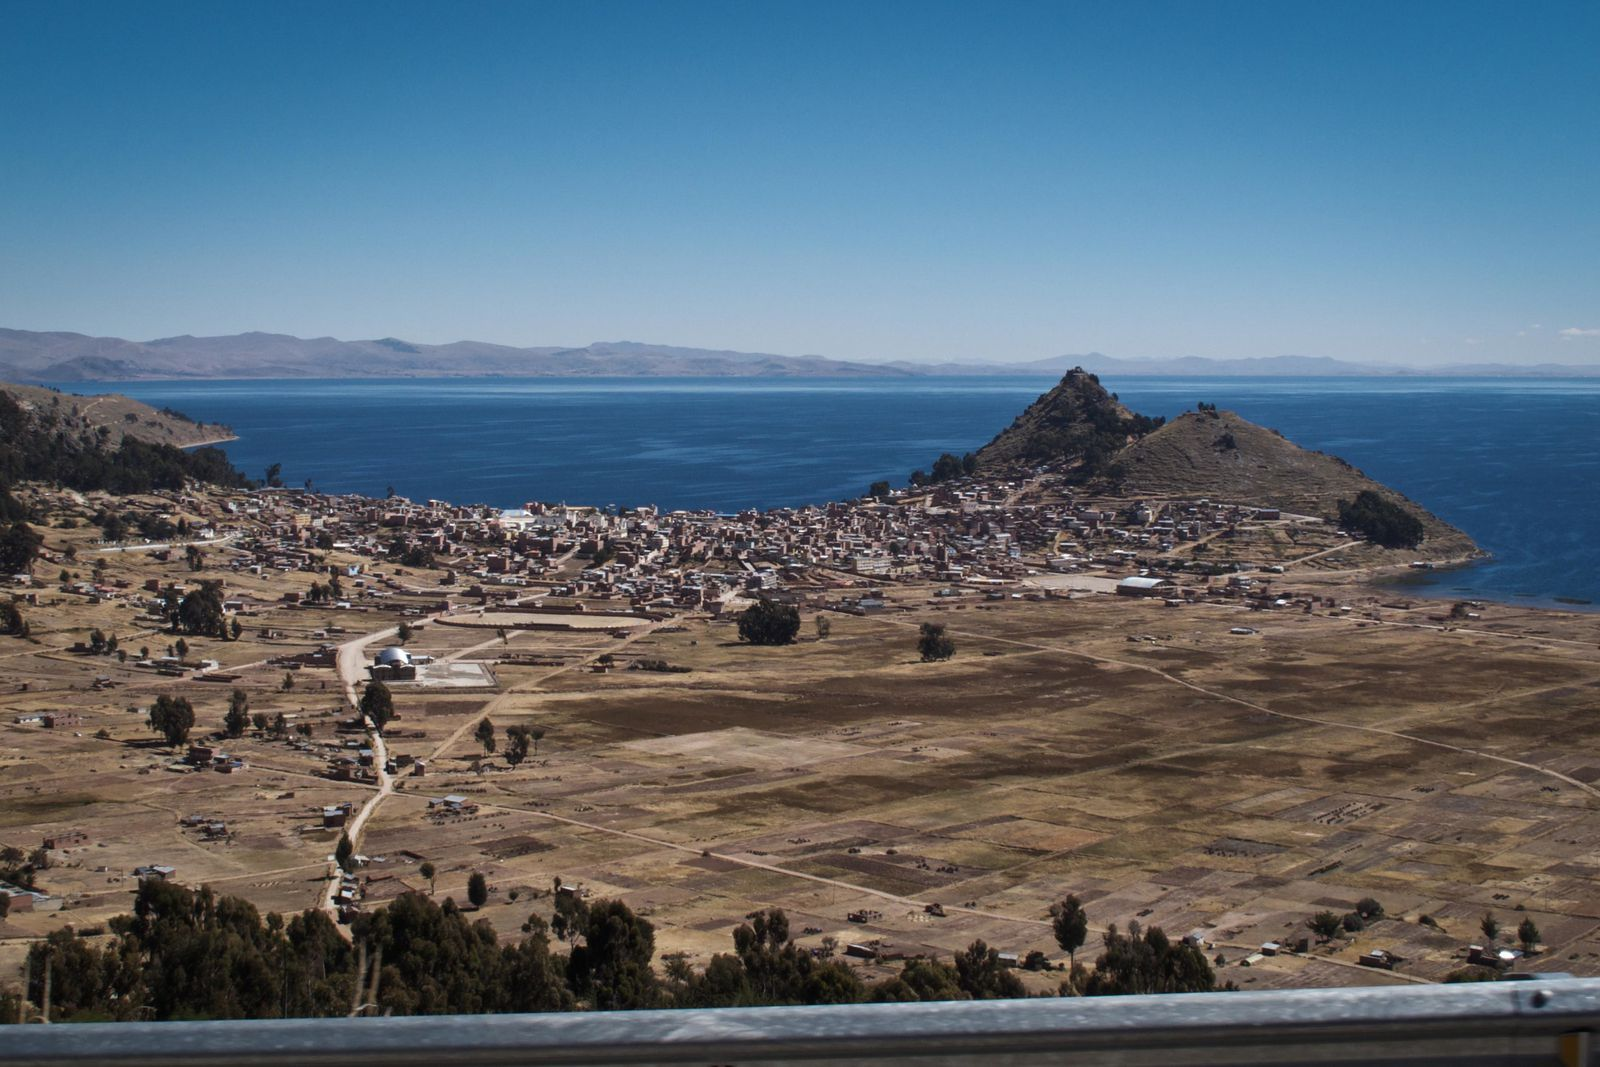 2012: BOLIVIE - Lac Titicaca